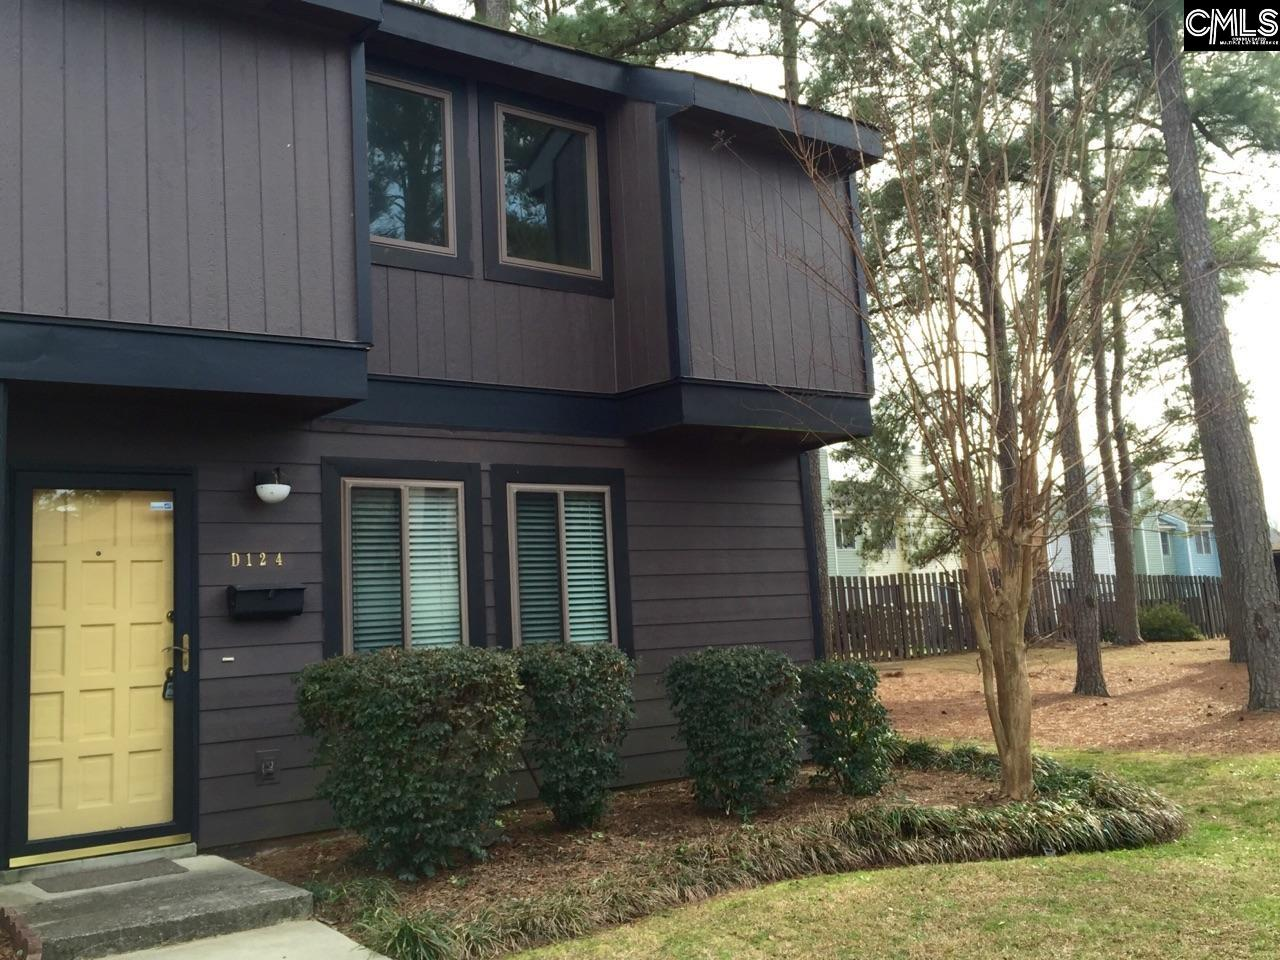 6905 Cleaton #D-124 Columbia, SC 29206